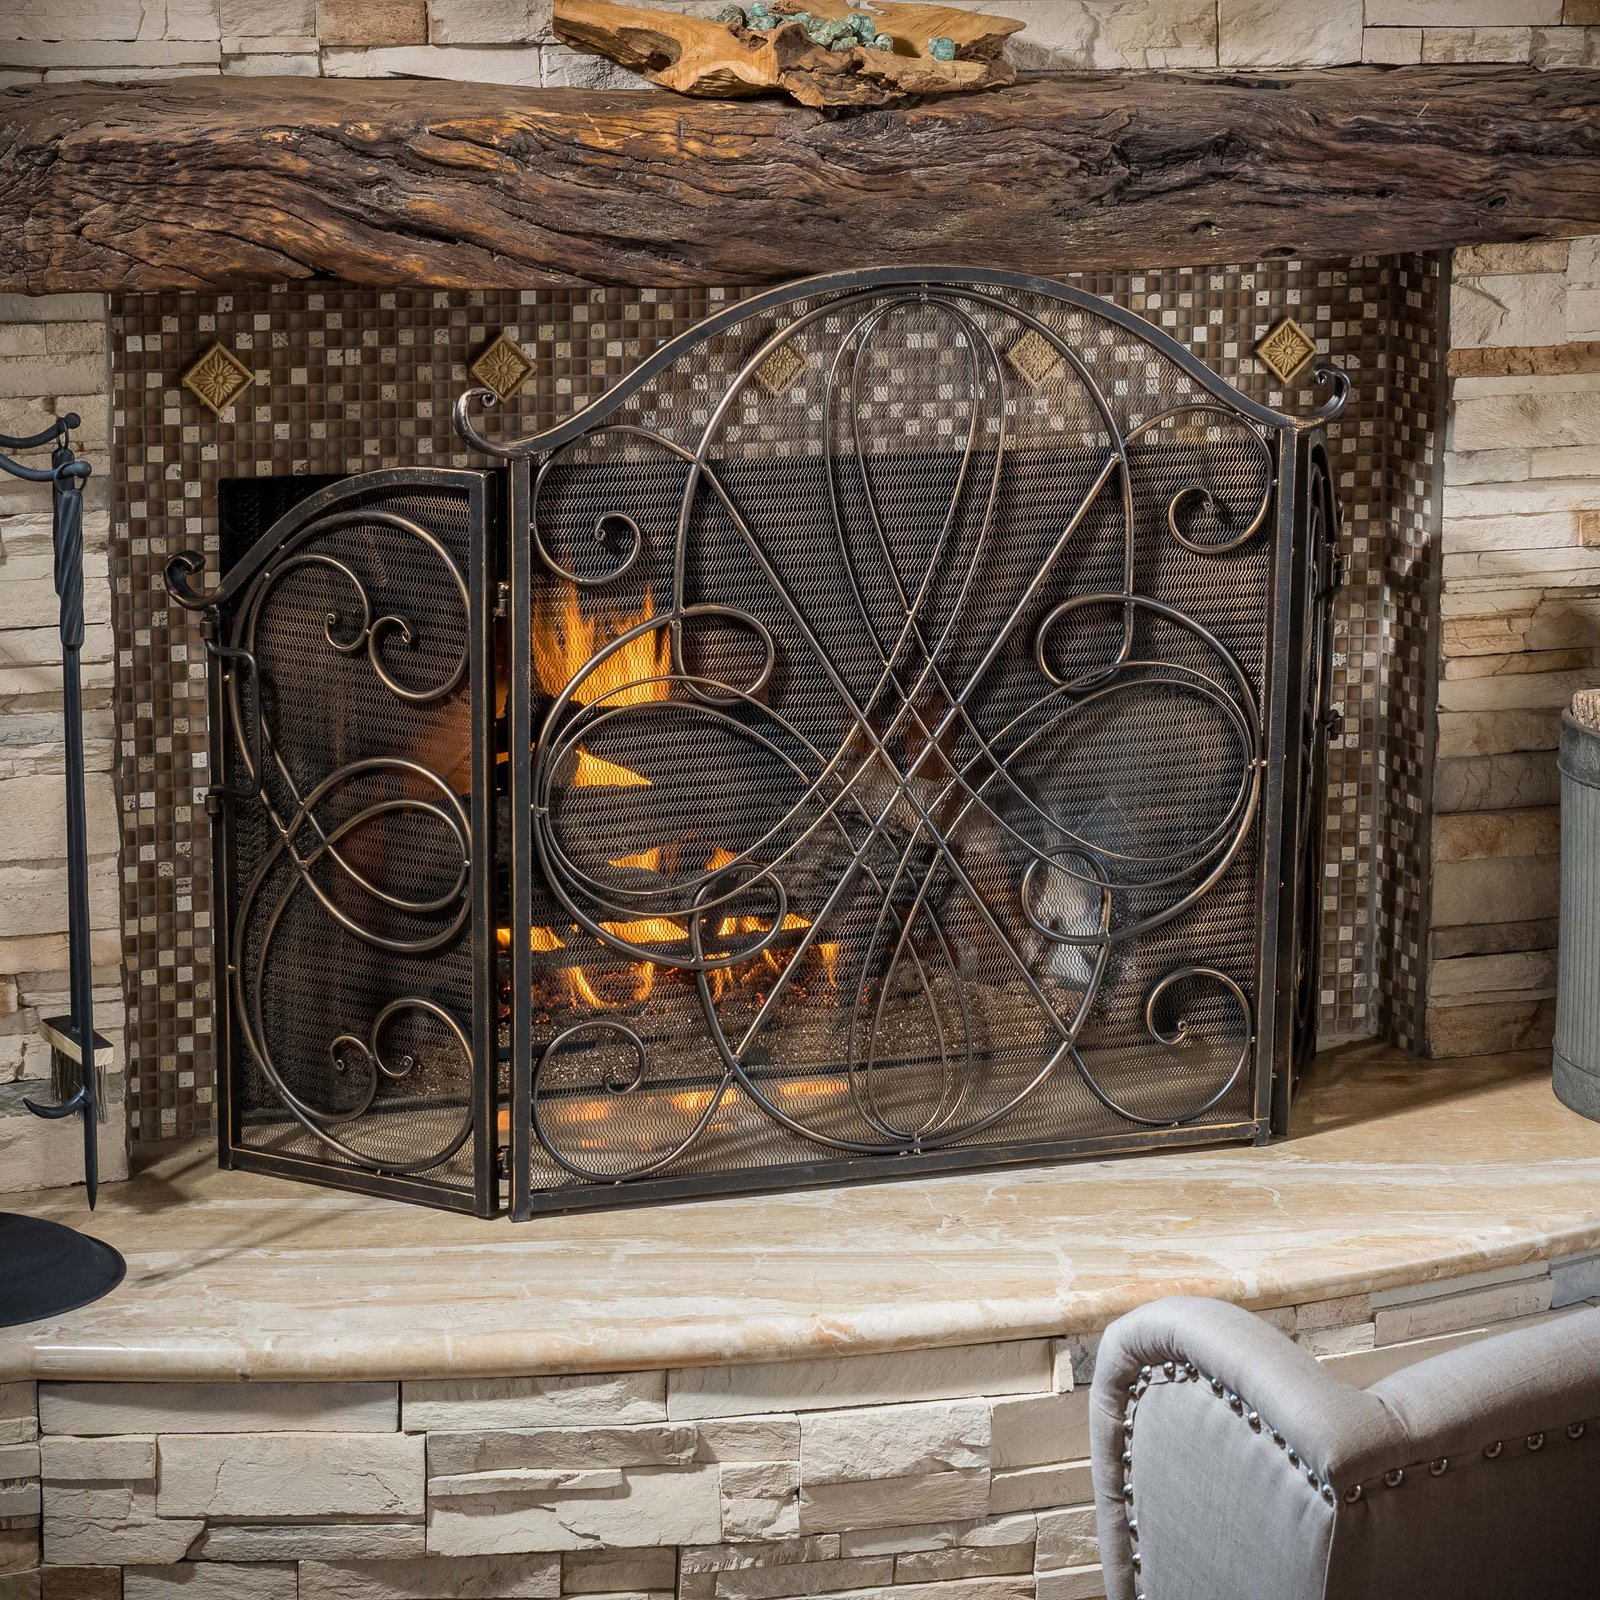 Best Selling Home Decor Oxford 3 Panel Iron Fireplace Screen by Overstock